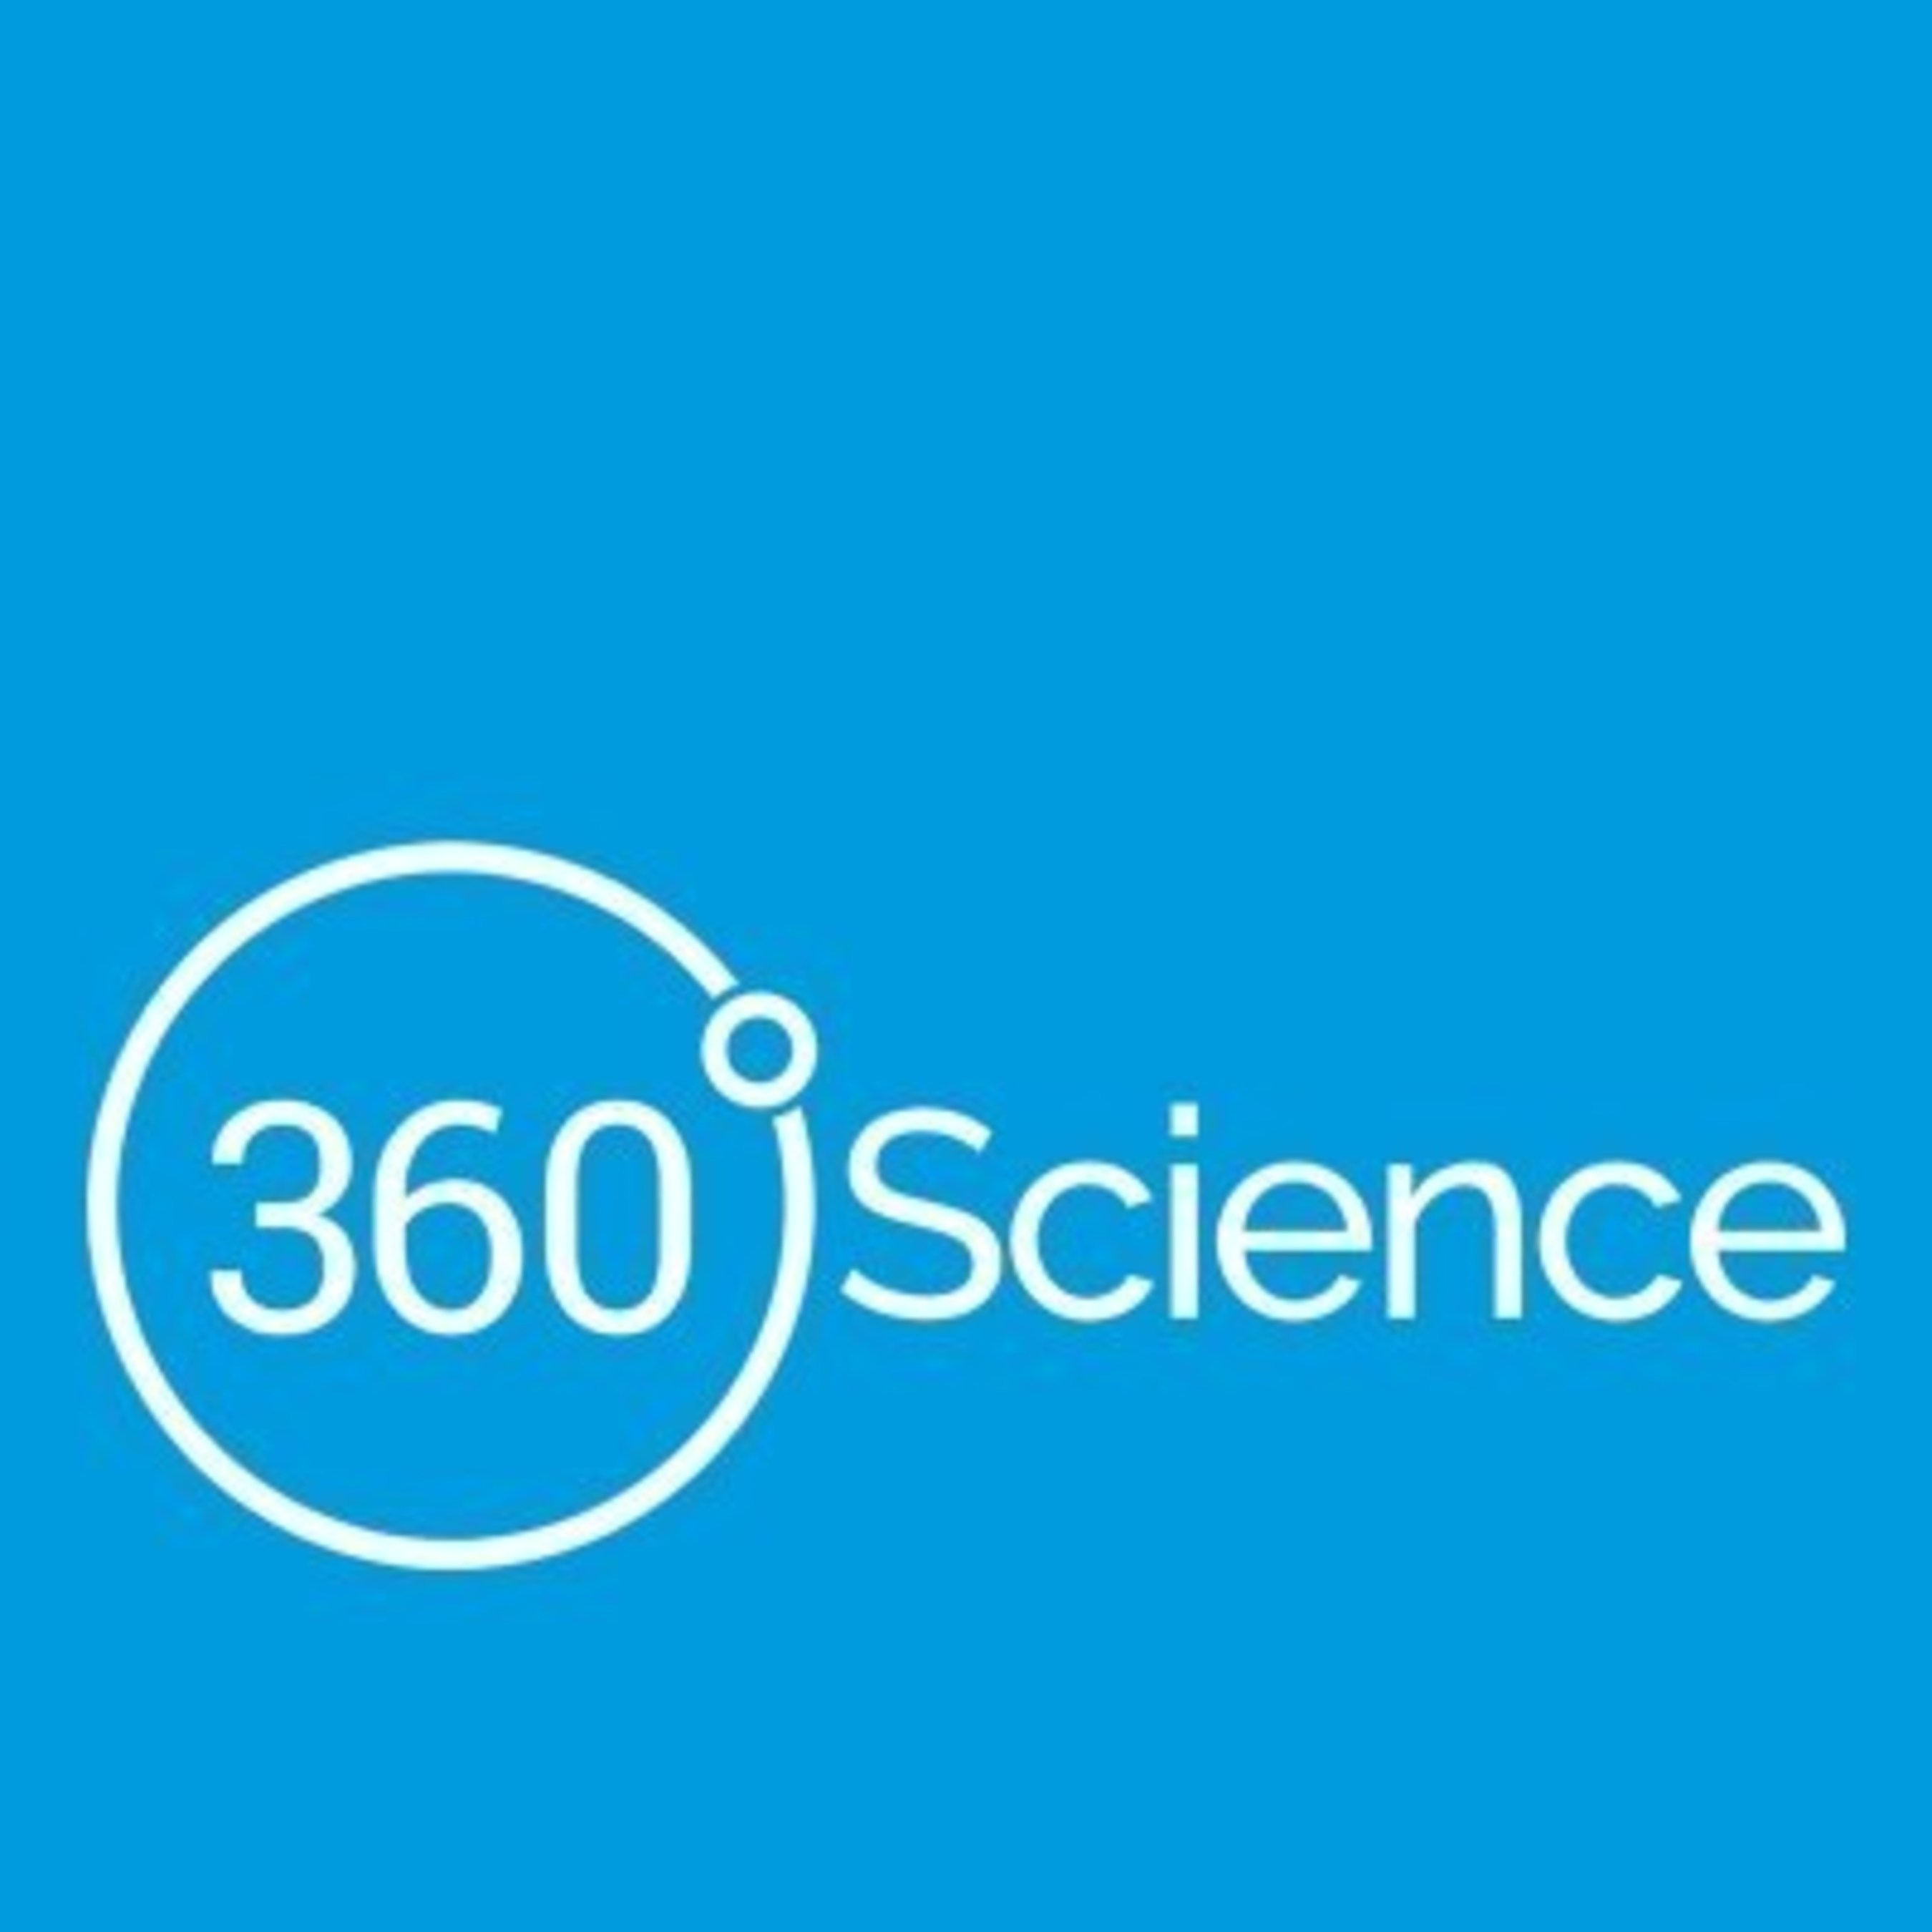 360Science - Austin's Newest Oldest Start-Up